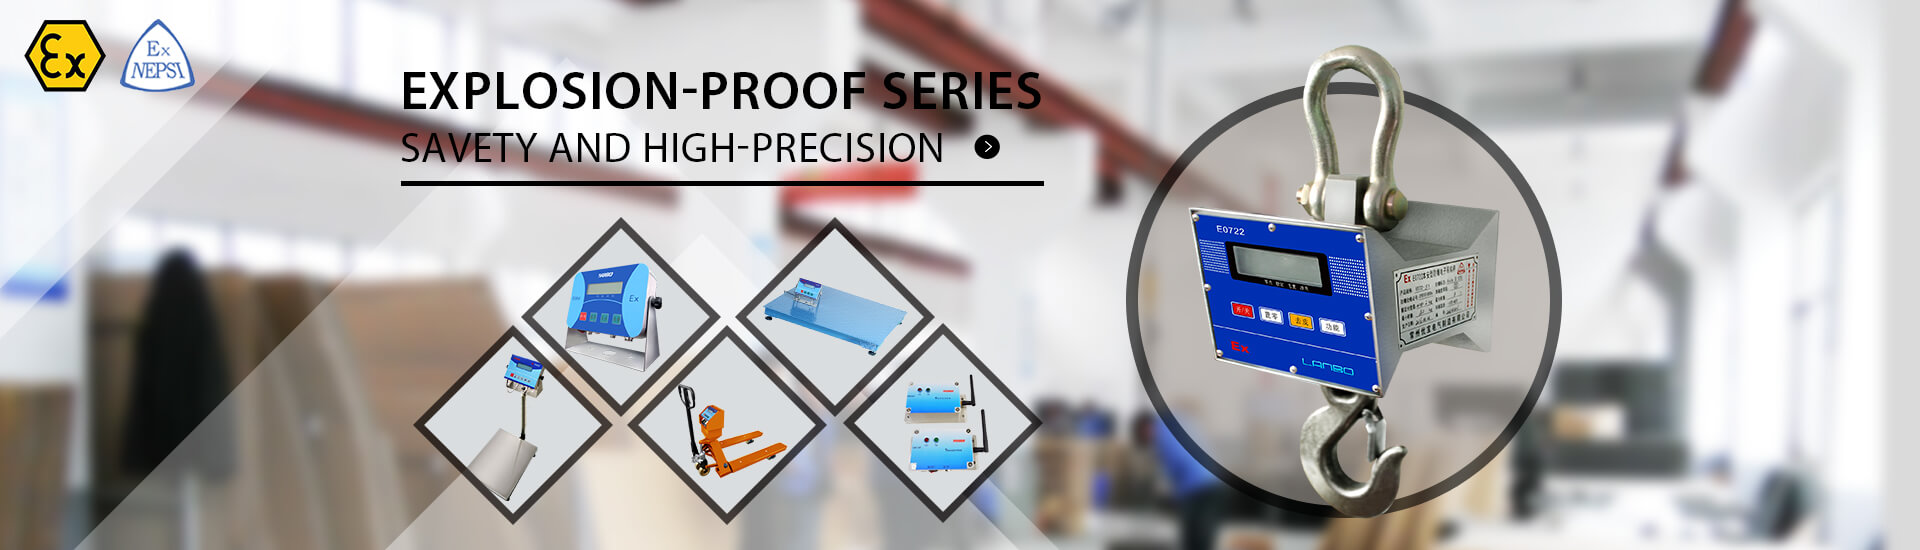 explosion-proof weighing scales